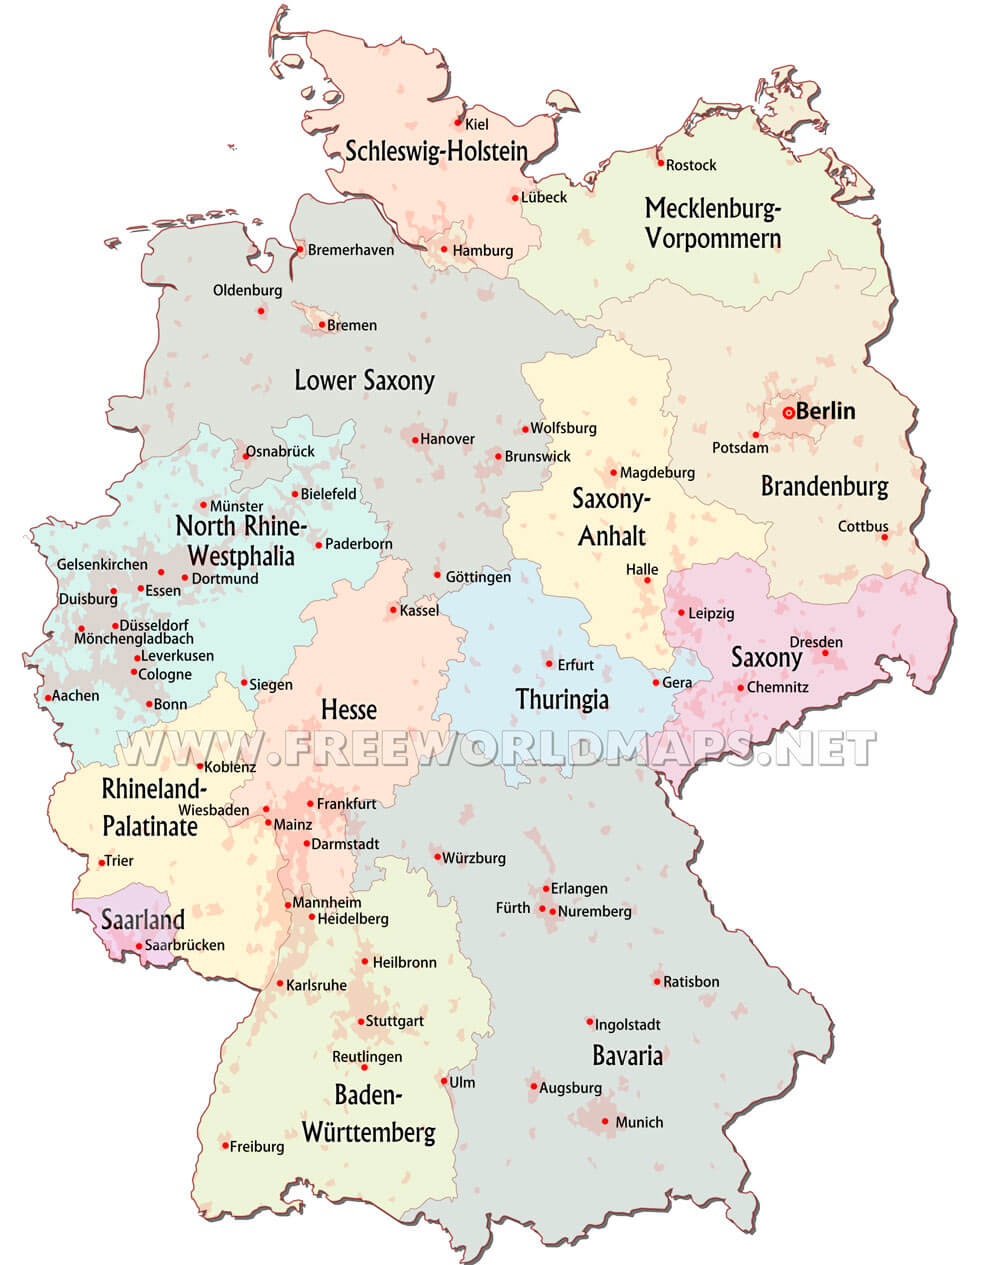 Karlsruhe Map Of Germany.Germany Maps By Freeworldmaps Net